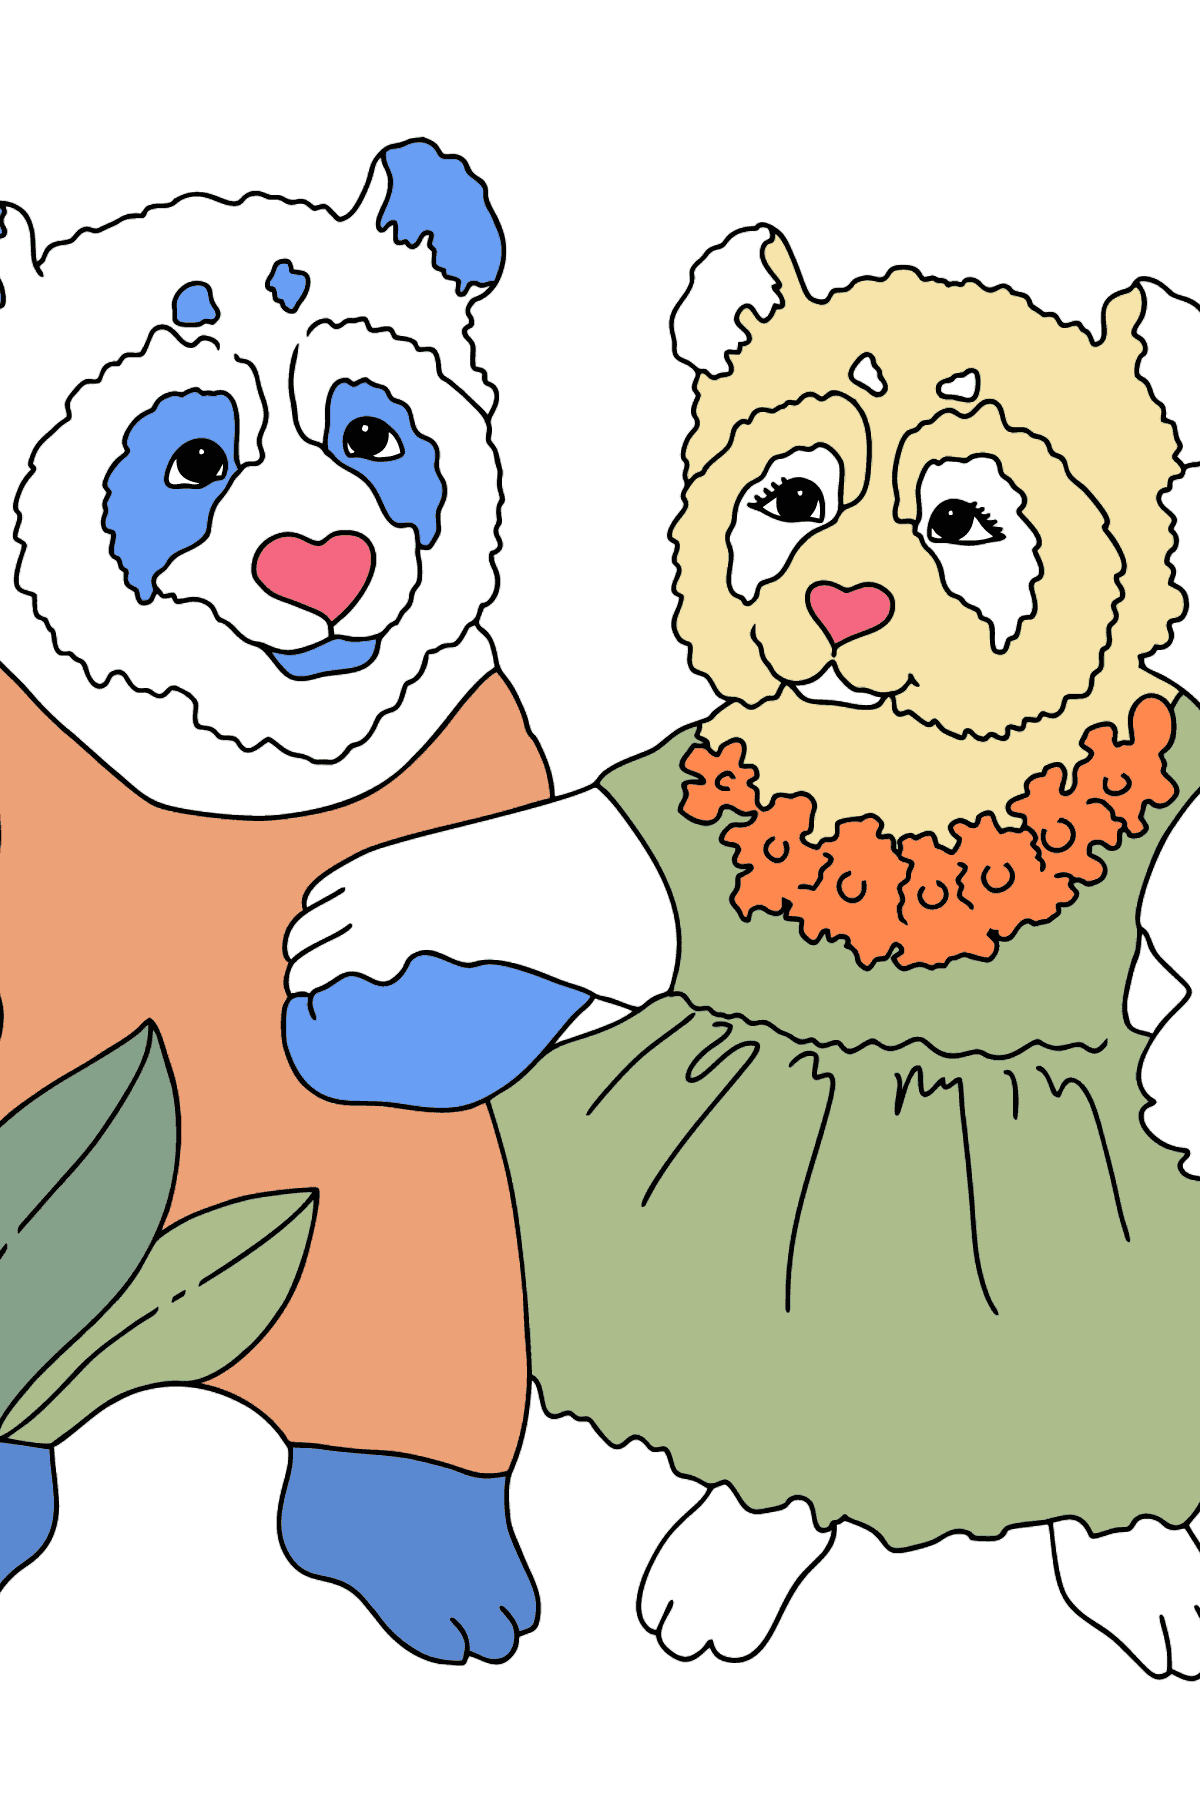 Coloring Page - Pandas are Taking a Walk - Coloring Pages for Kids